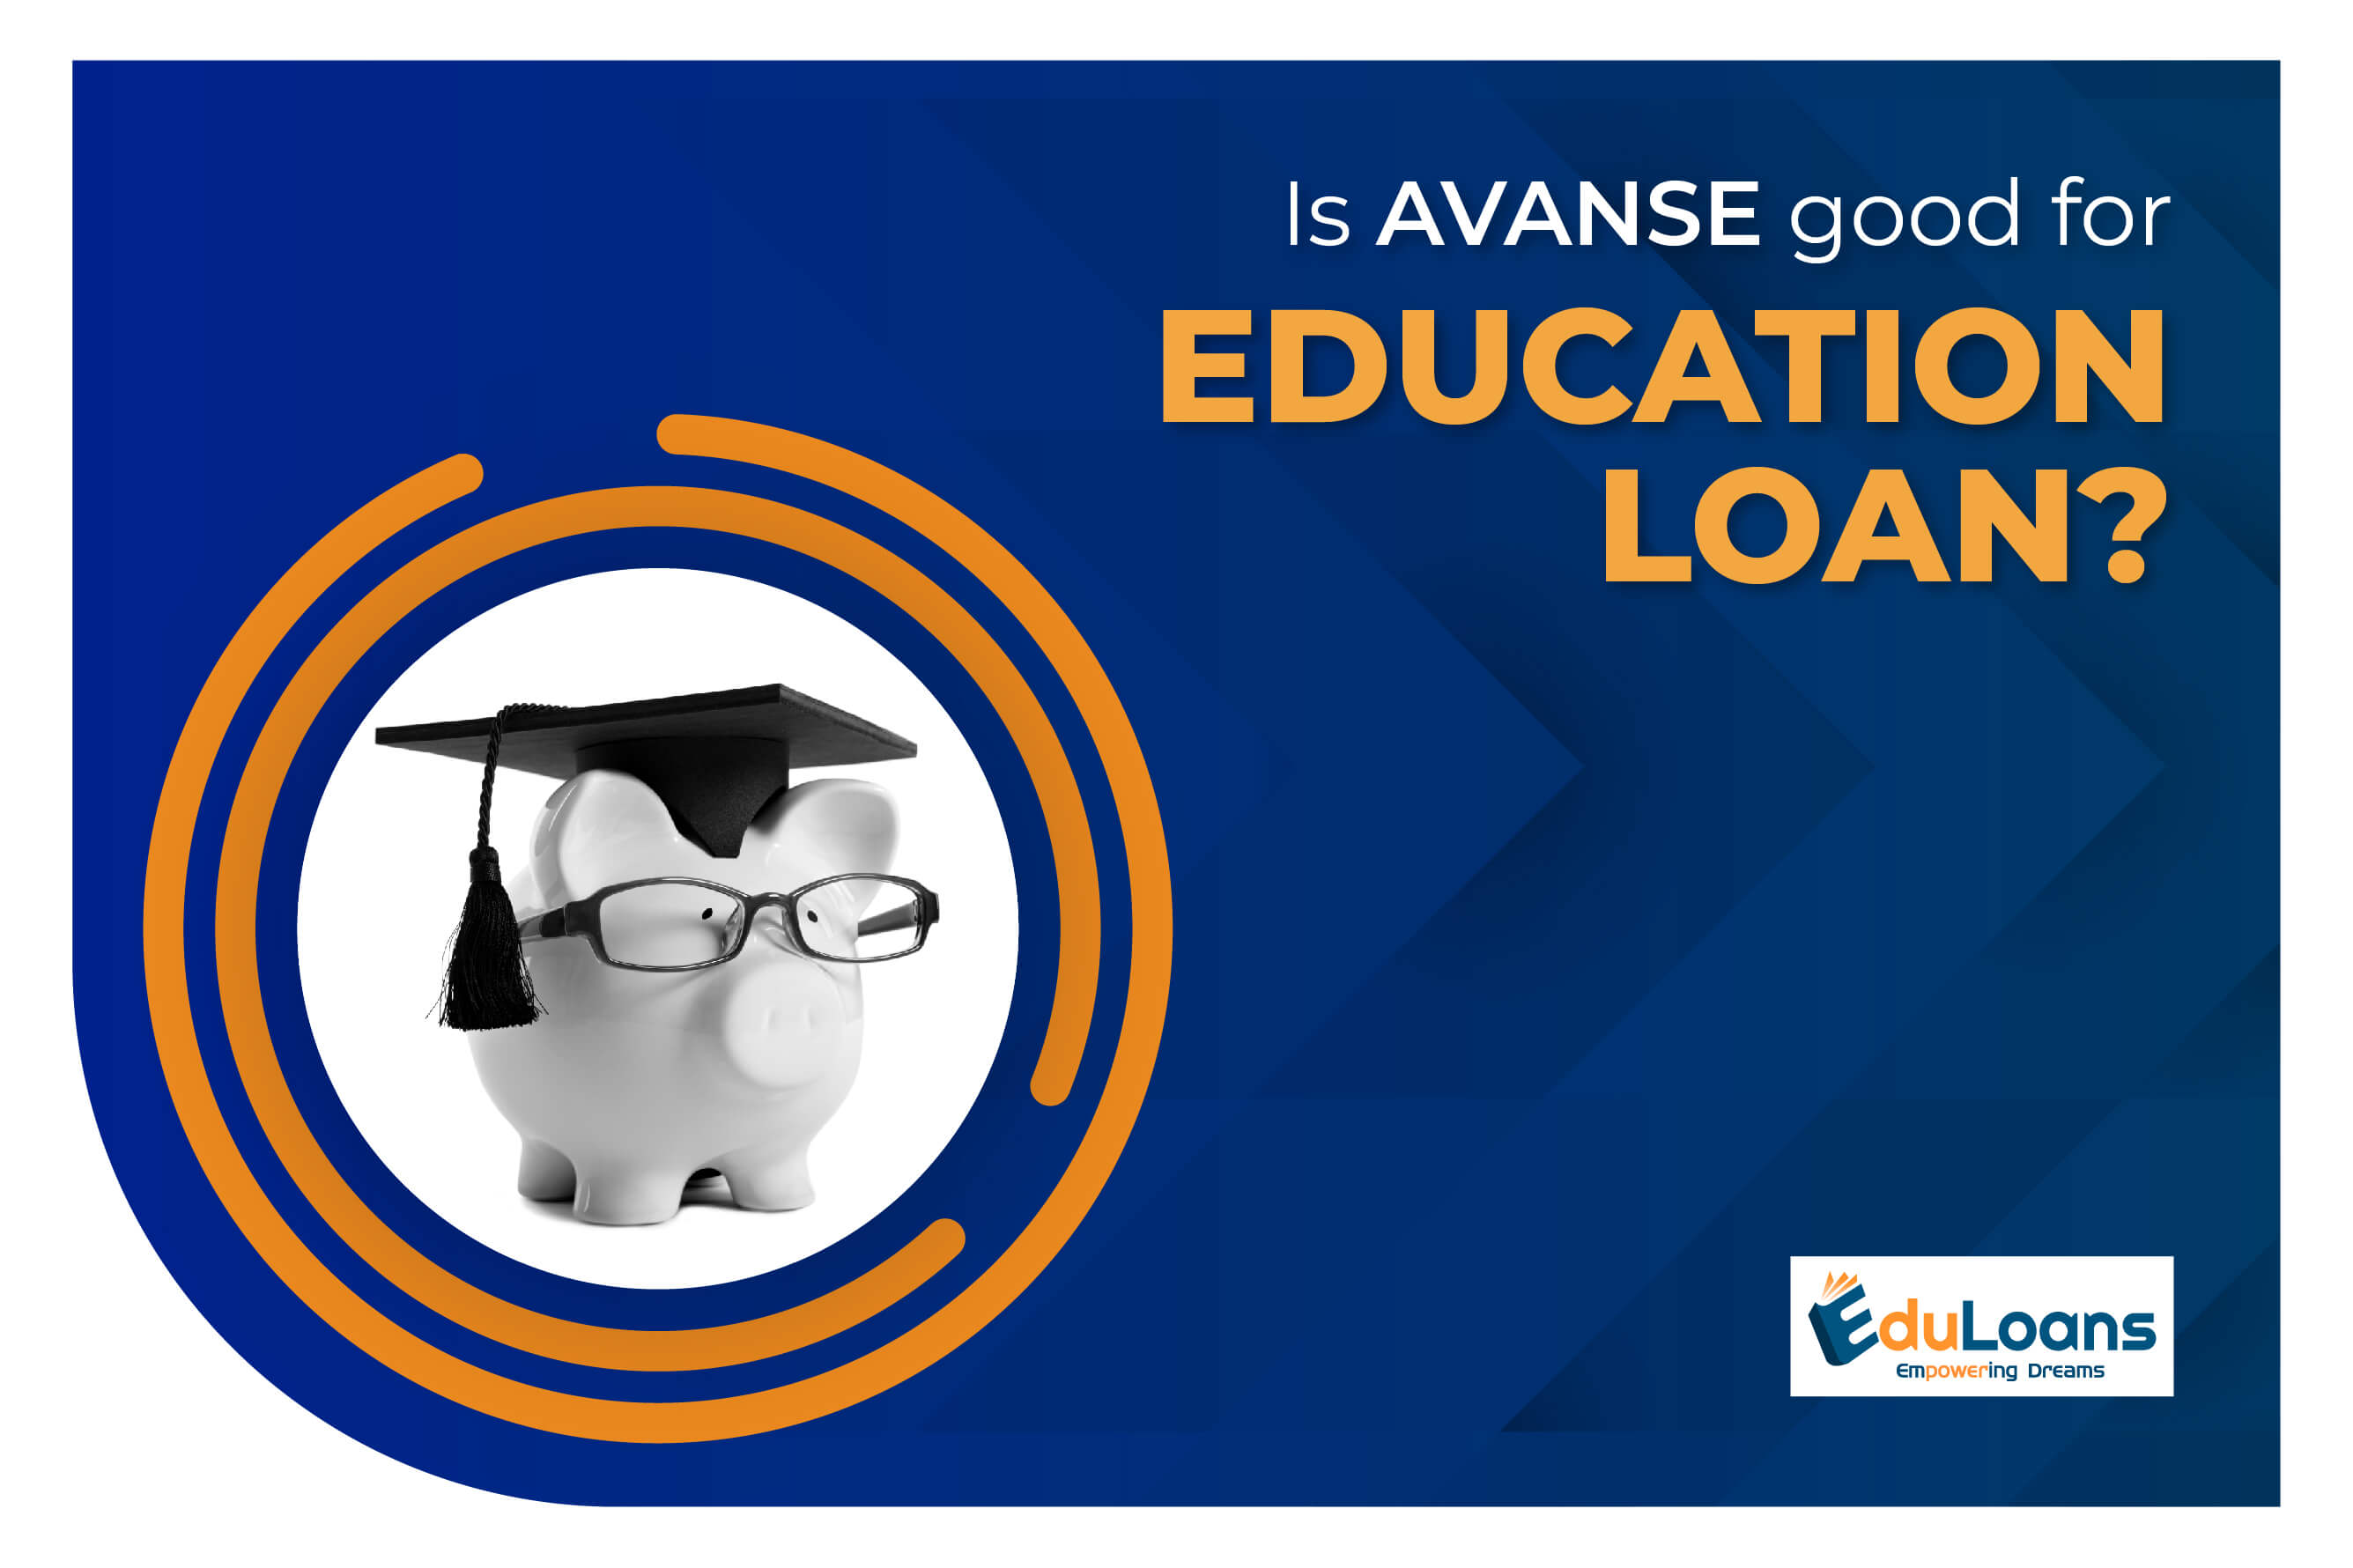 Is Avanse good for education loan?